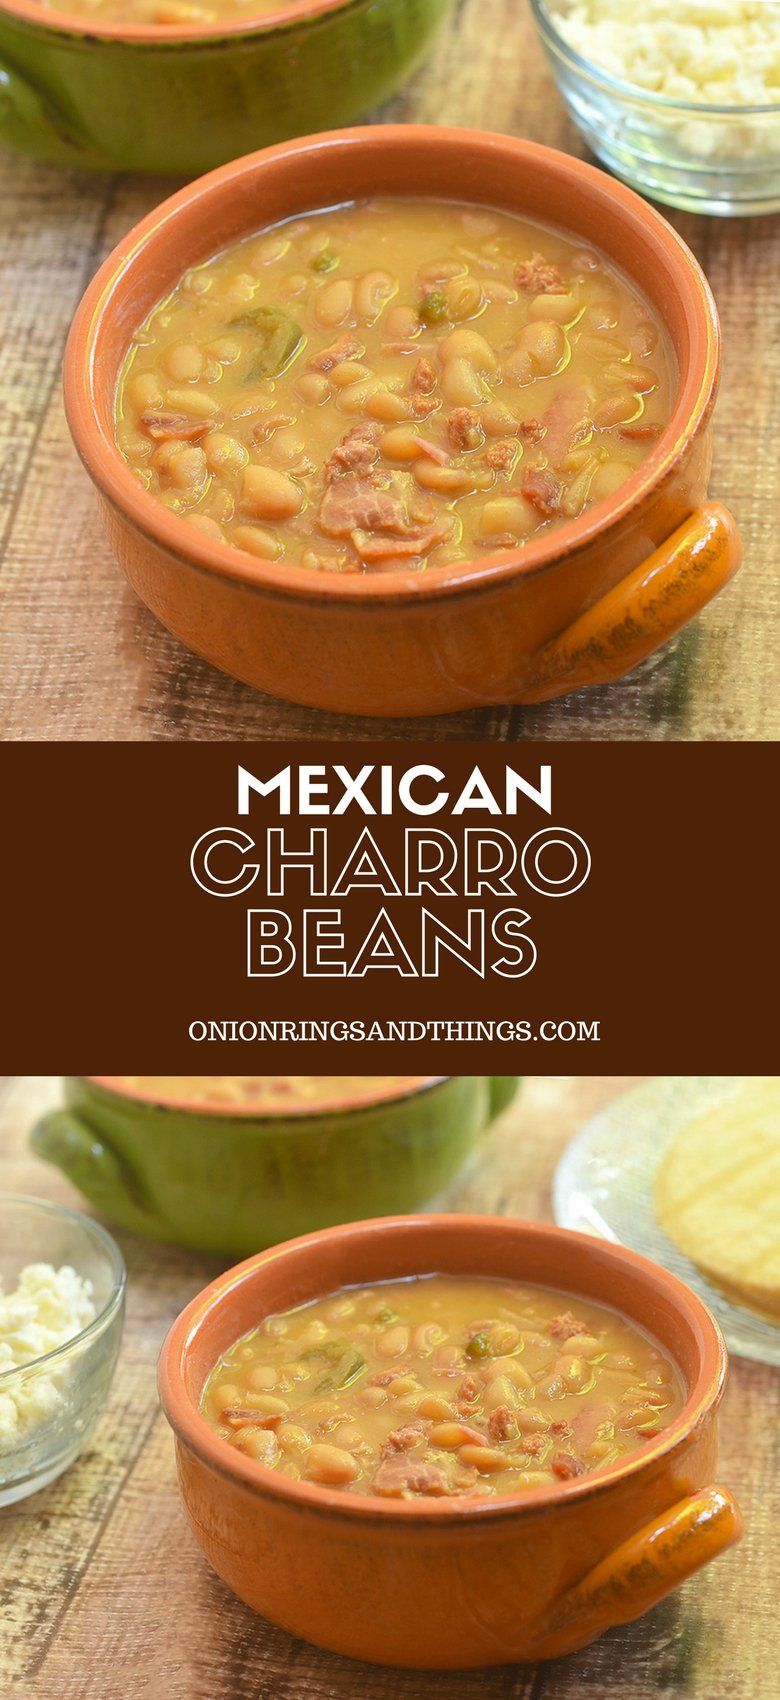 Charro Bean cooked with bacon, chorizo, tomatoes and chili peppers for a delicious accompaniment to your favorite Mexican entrees. They're hearty enough to be enjoyed on their own with warm tortillas and the recipe can be easily doubled to feed a crowd!